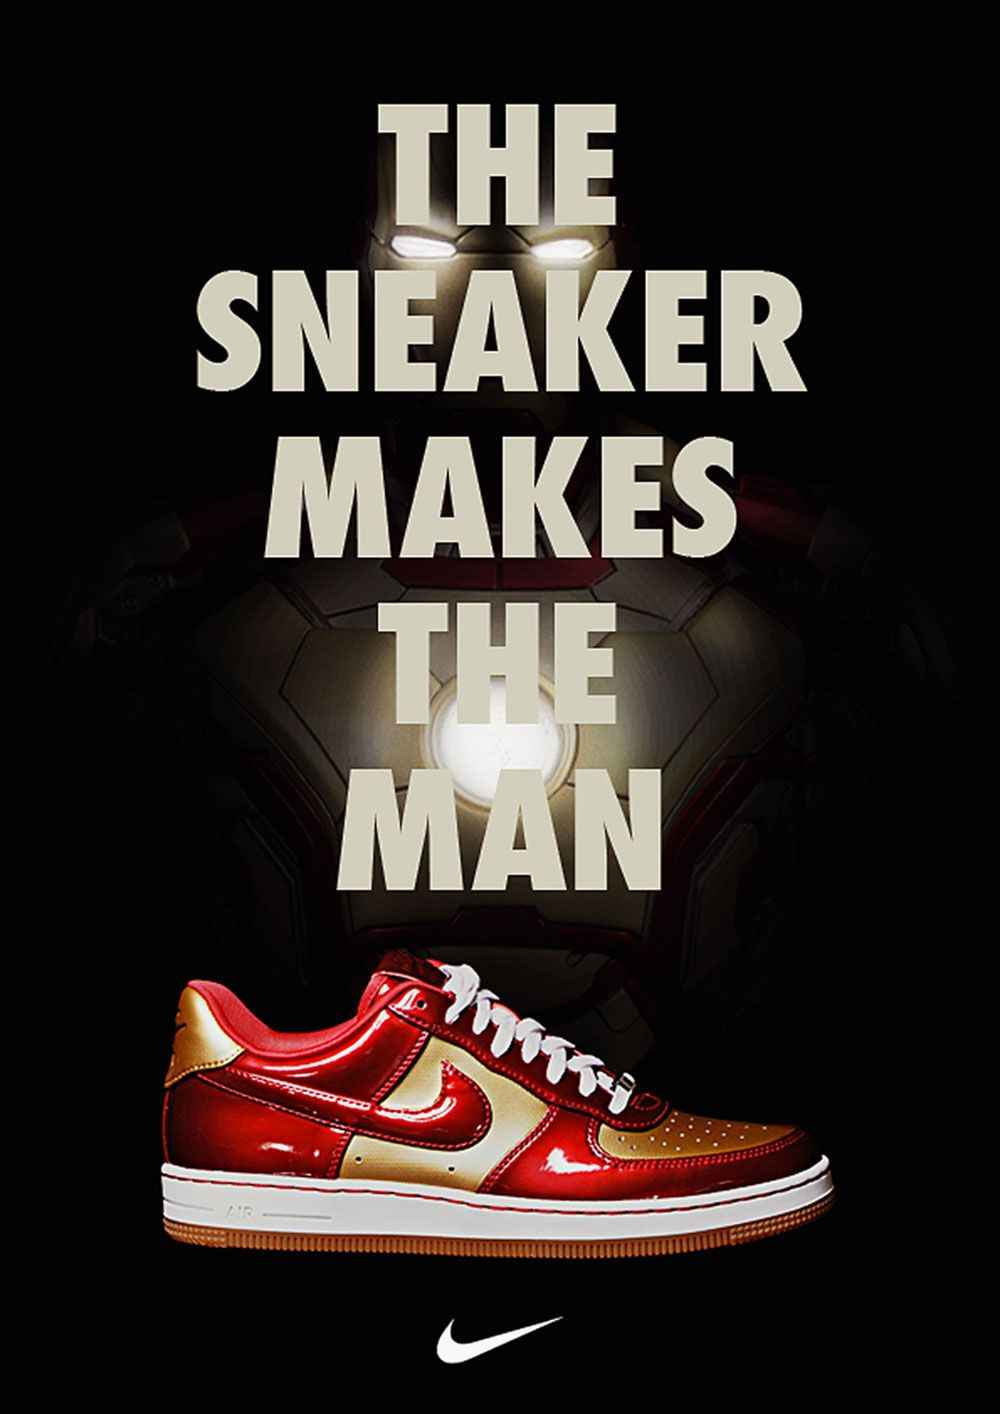 The sneaker makes the man | Sneaker posters, Nike ad, Nike ...